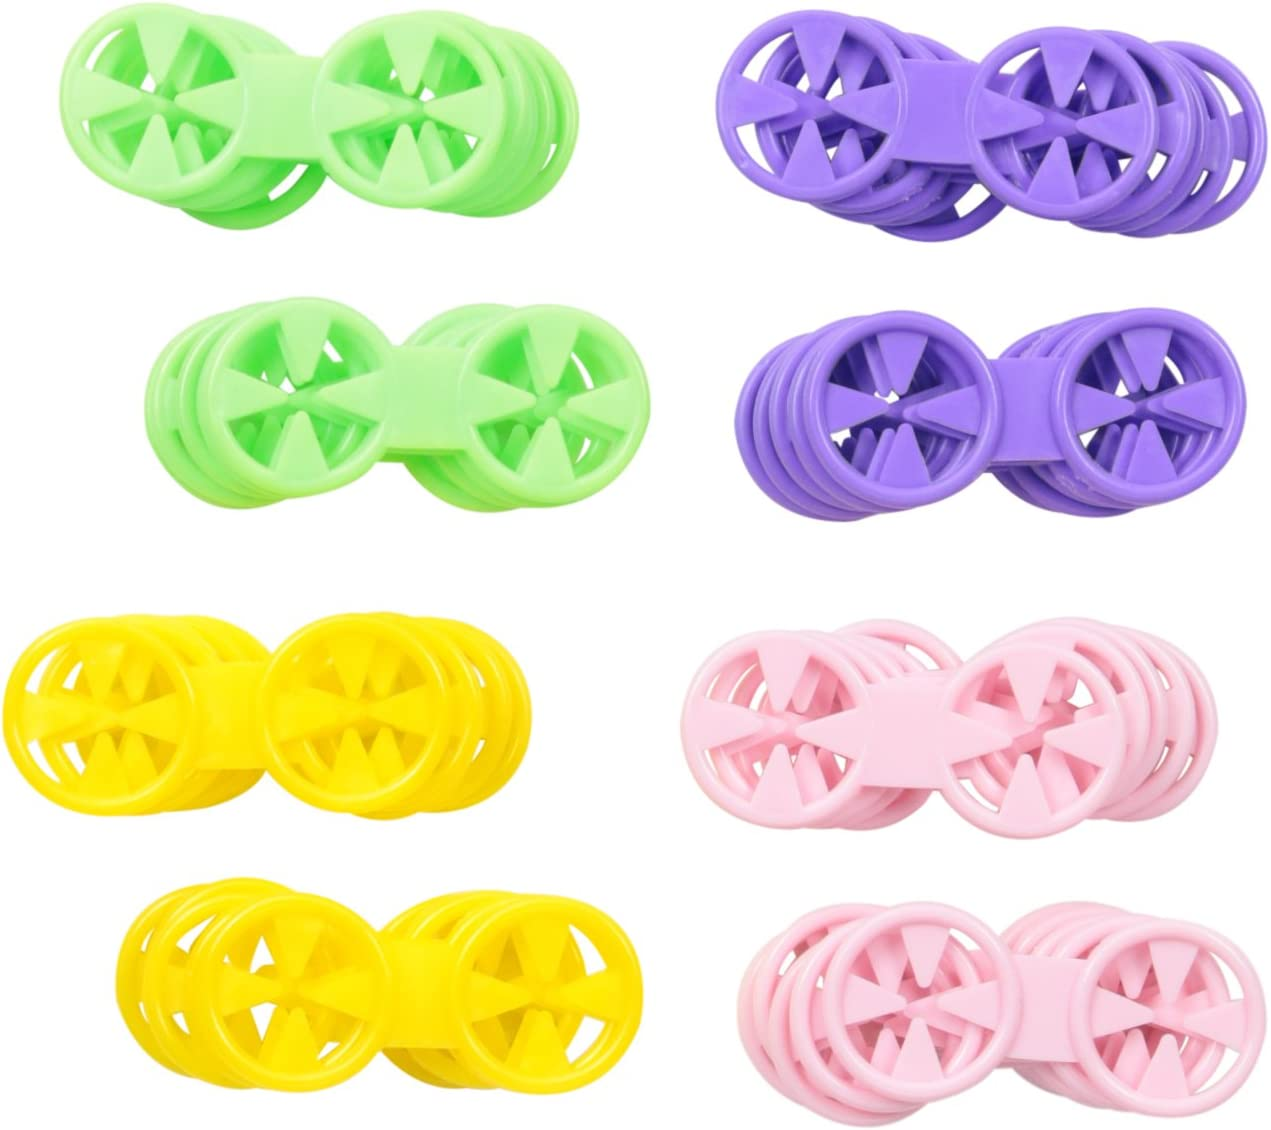 Loc A Sok Sock Locks (Pack of 40 - Purple, Green, Yellow and Pink)